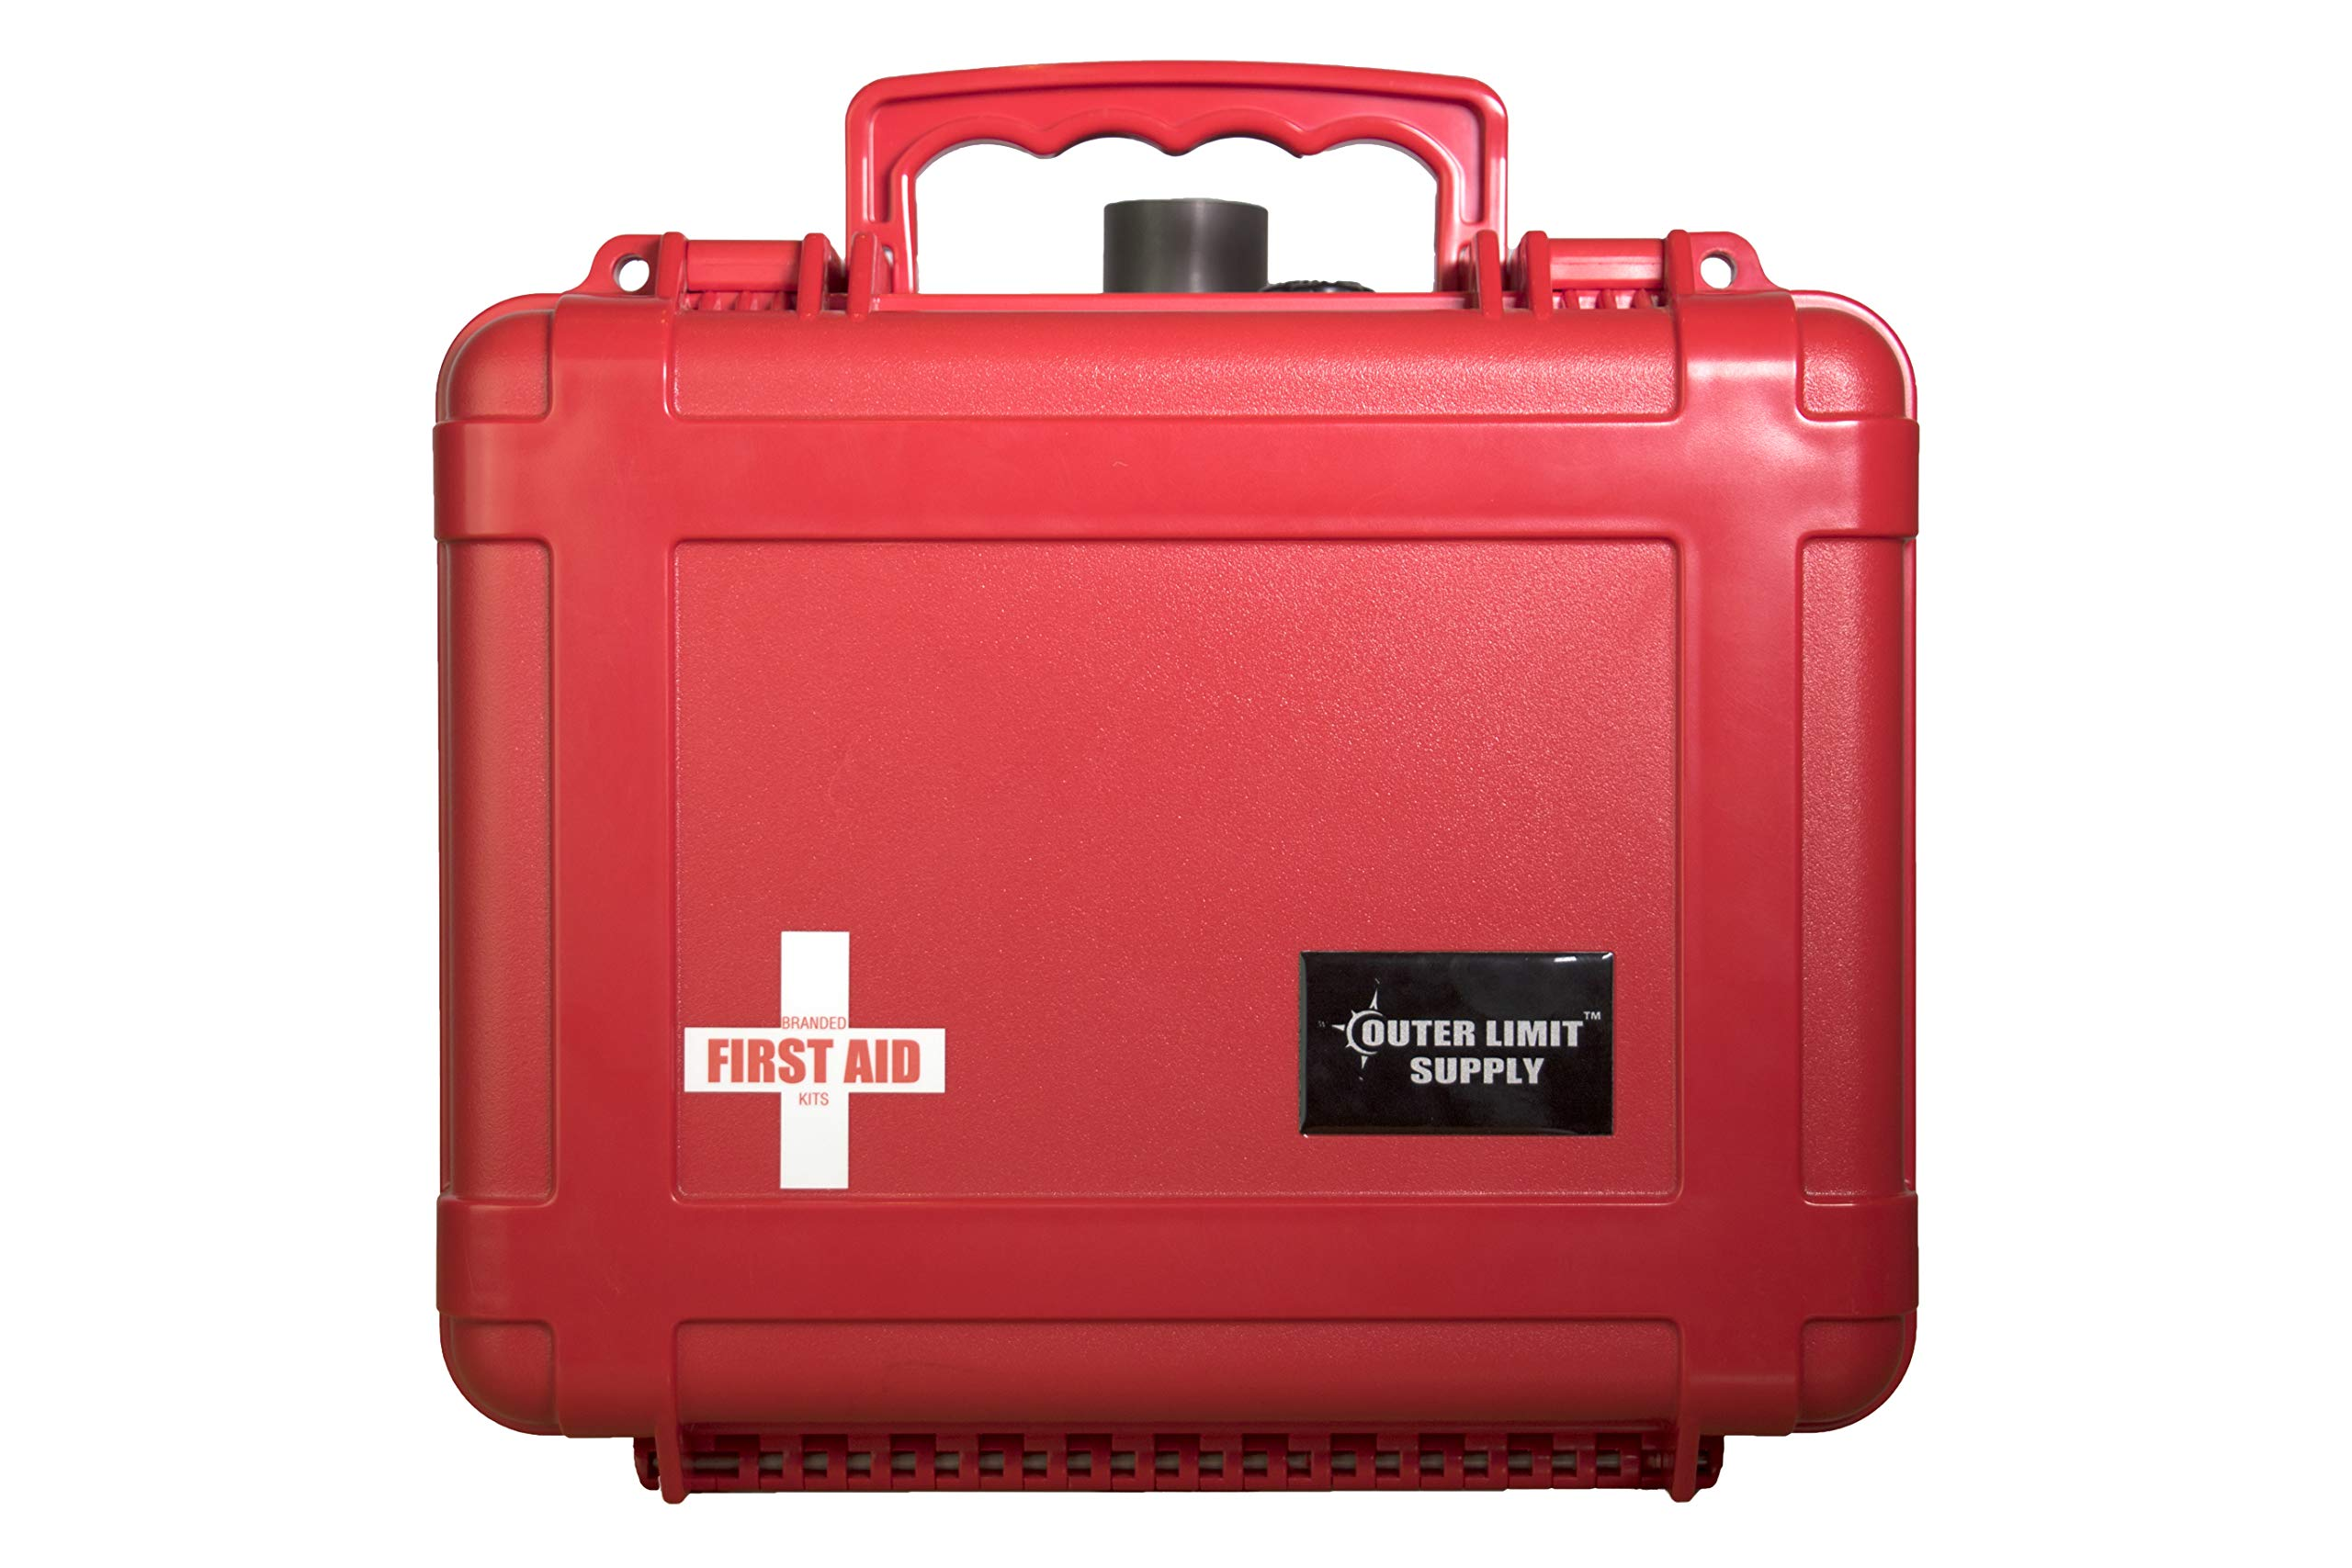 Outer Limit Supply - 6500 Series Emergency First Aid Kit - Waterproof, Secure, Rugged - Designed for Camping, Backpacking, Hiking - The Perfect Survival Kit for the Entire Family - Lifetime Warranty